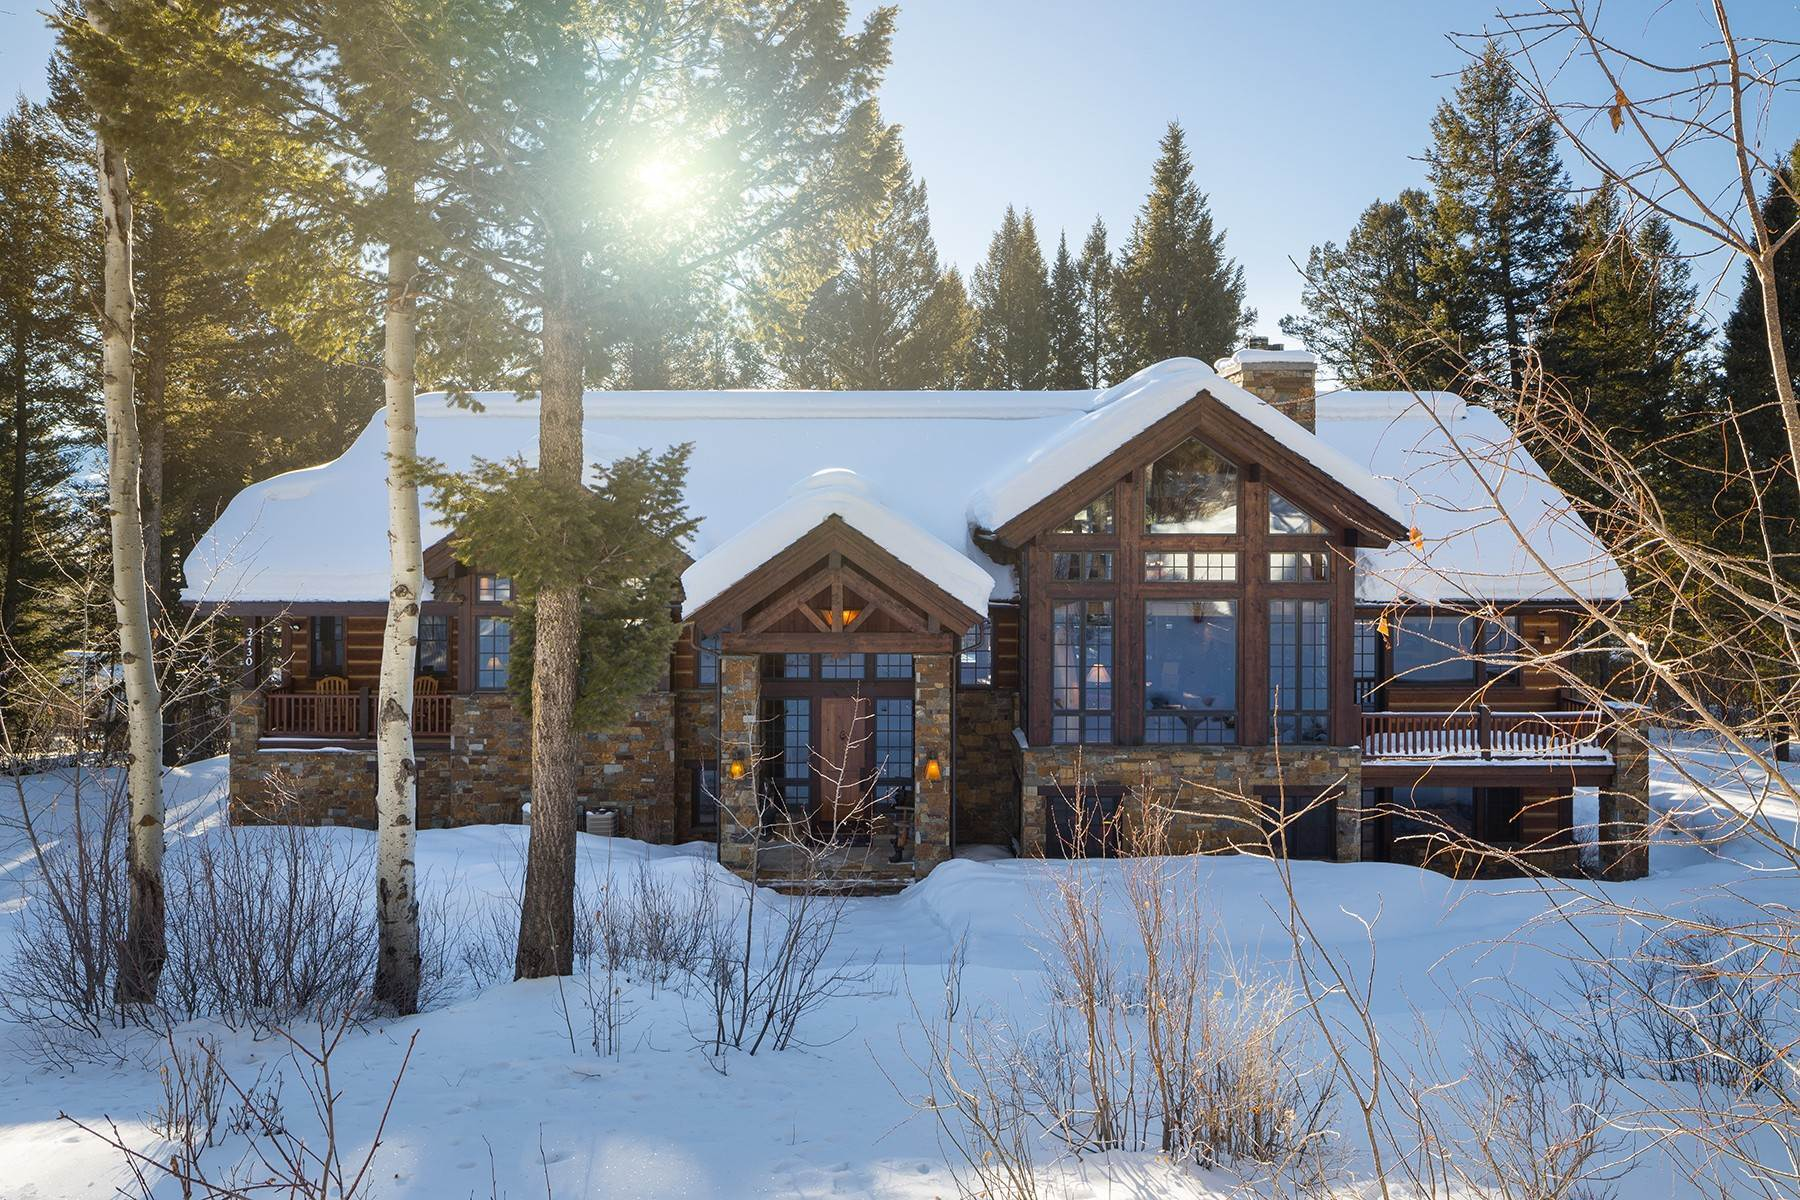 Single Family Homes for Sale at 3730 W Curtis Drive Teton Village, Wyoming 83025 United States